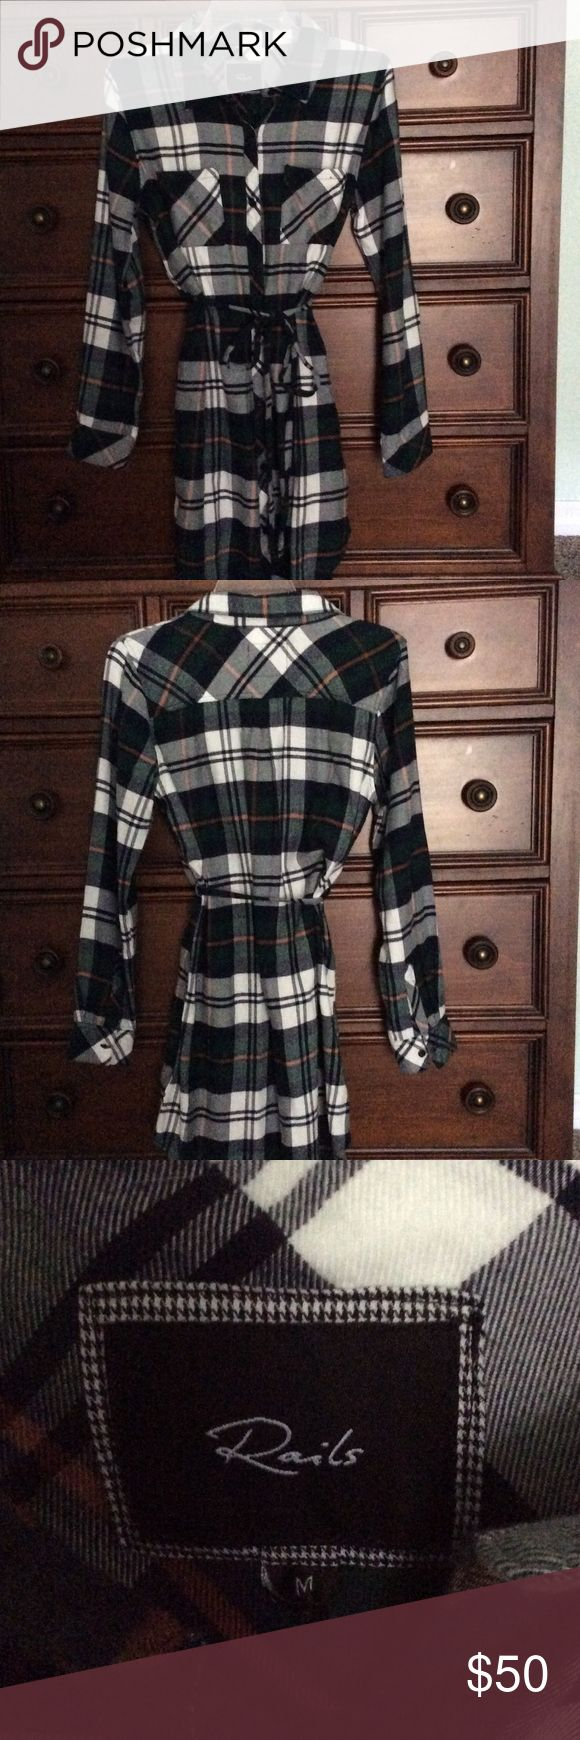 """Rails brand flannel shirt dress perfect condition This is a flannel shirt dress perfect condition, Colors are green navy orange and white. Made by Rails, this is not cheap flannel that will shrink and fade ❣️❣️ very soft nice flannel, buttons all the way down has two front pockets and a tie belt. Measurements are, shoulder to shoulder is 17"""" arm pit to arm p is 16""""  length is 35 1/2 """" long 😊 comes from a smoke free home. Rails Dresses Midi"""